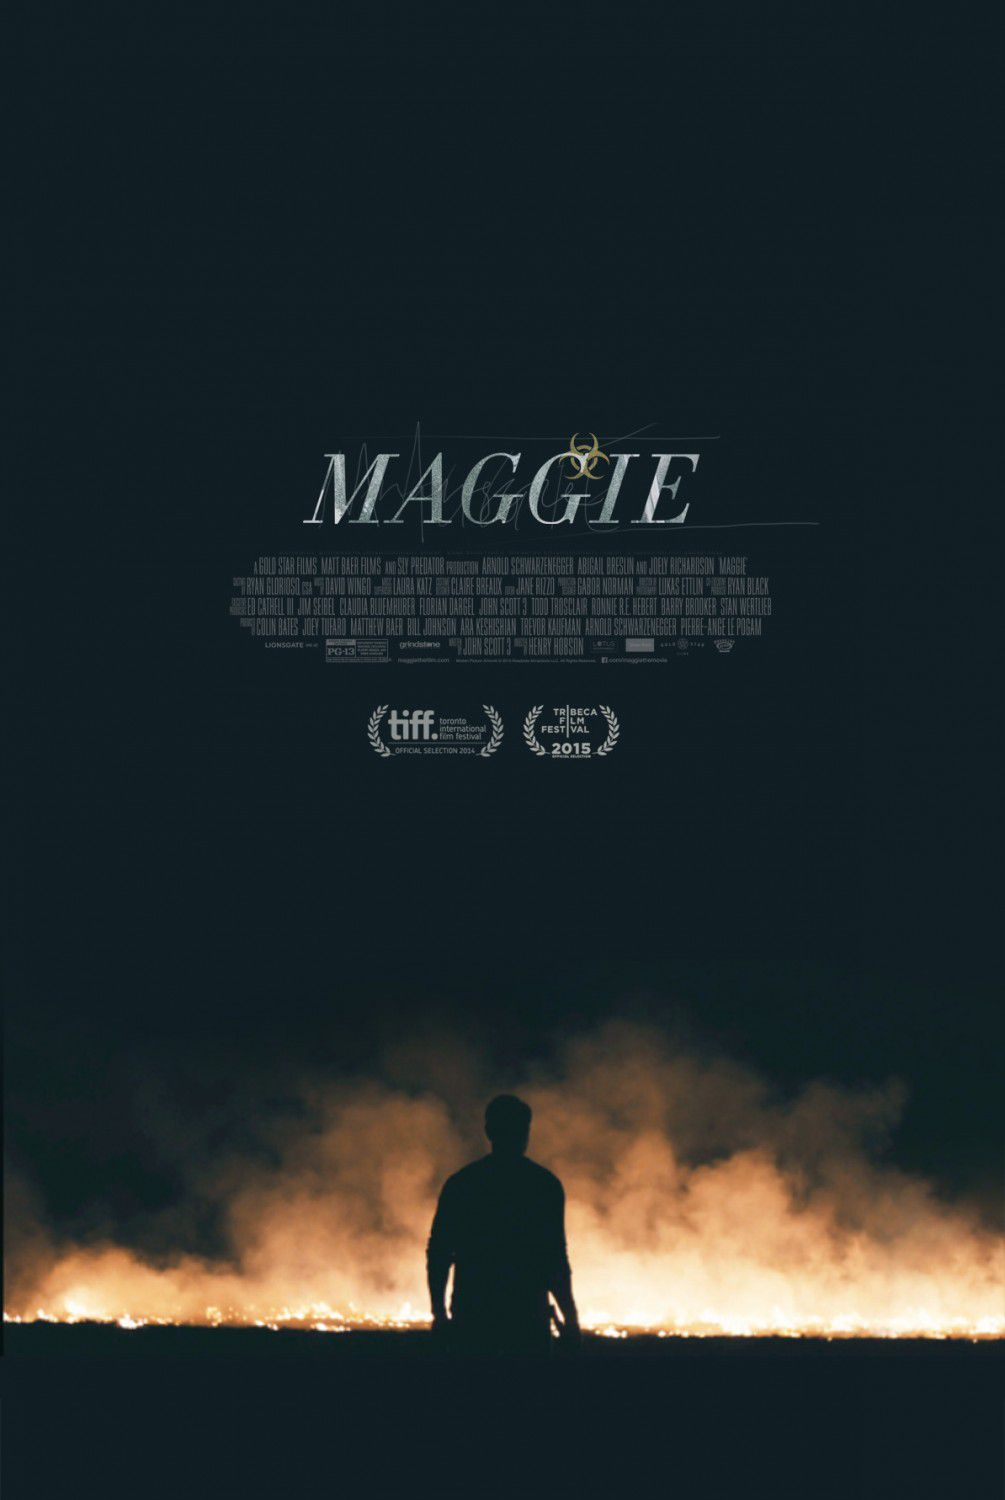 Contagious - Maggie - film poster